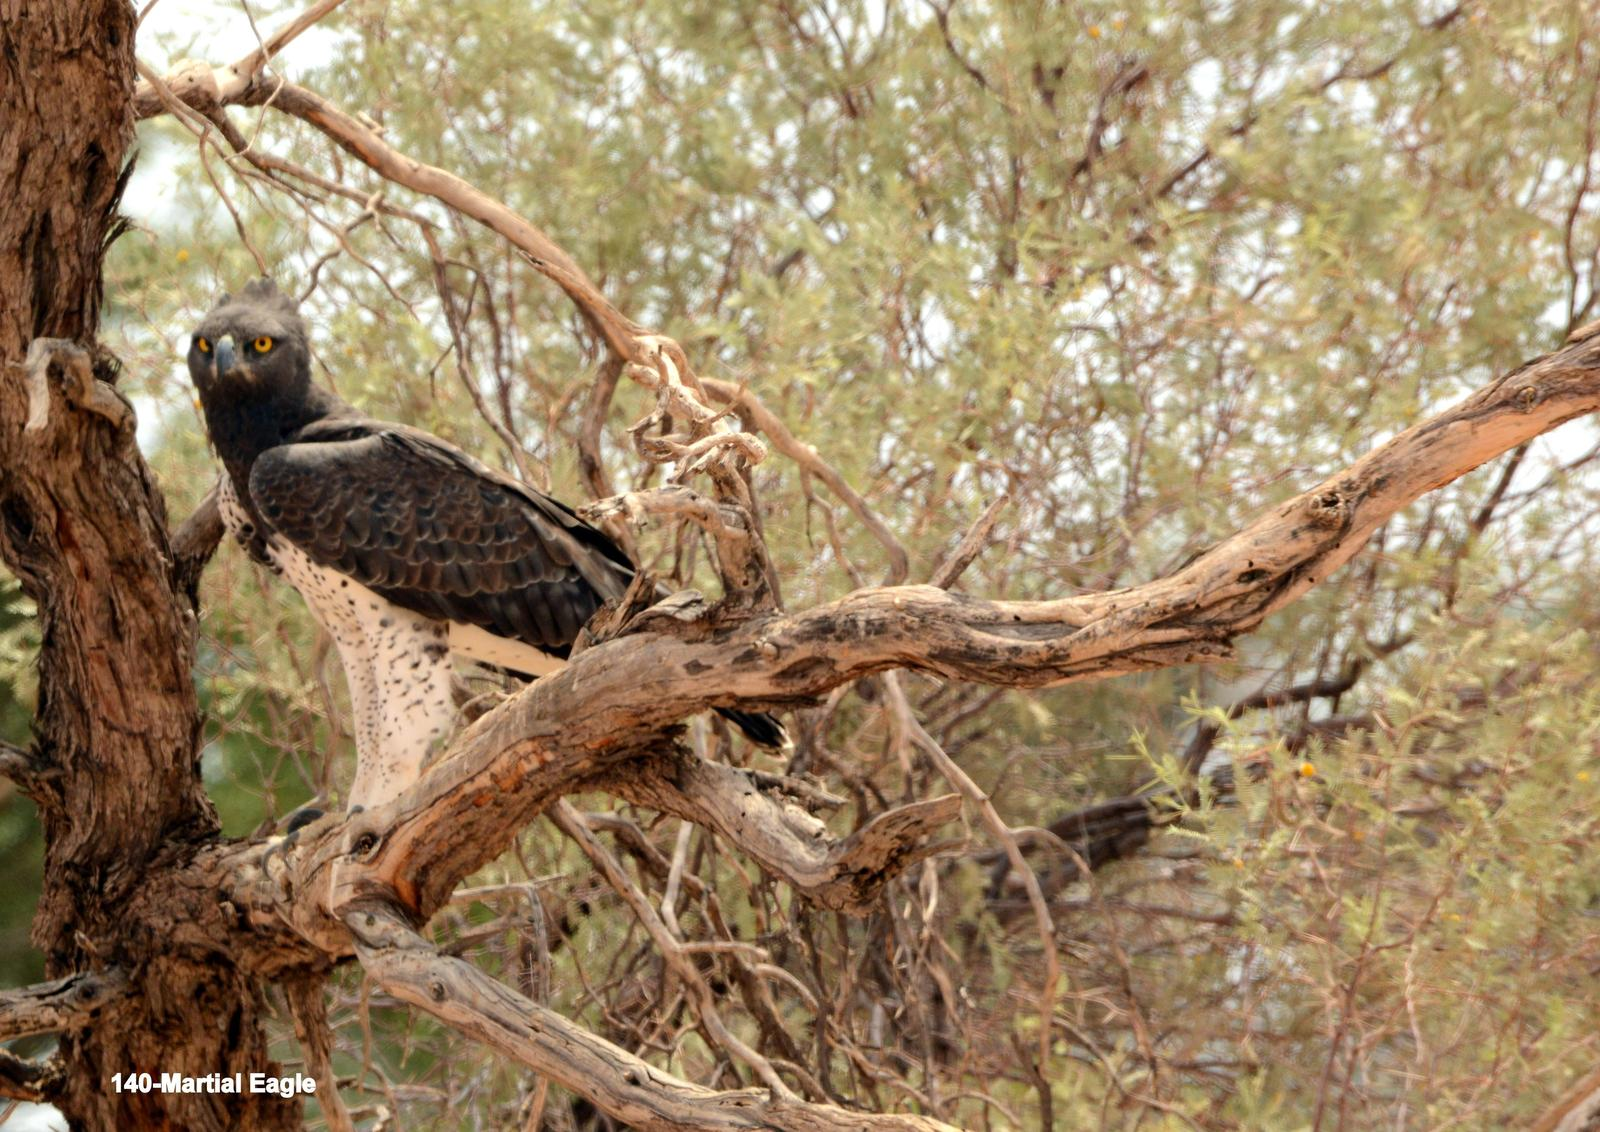 Martial Eagle Photo by Richard  Lowe